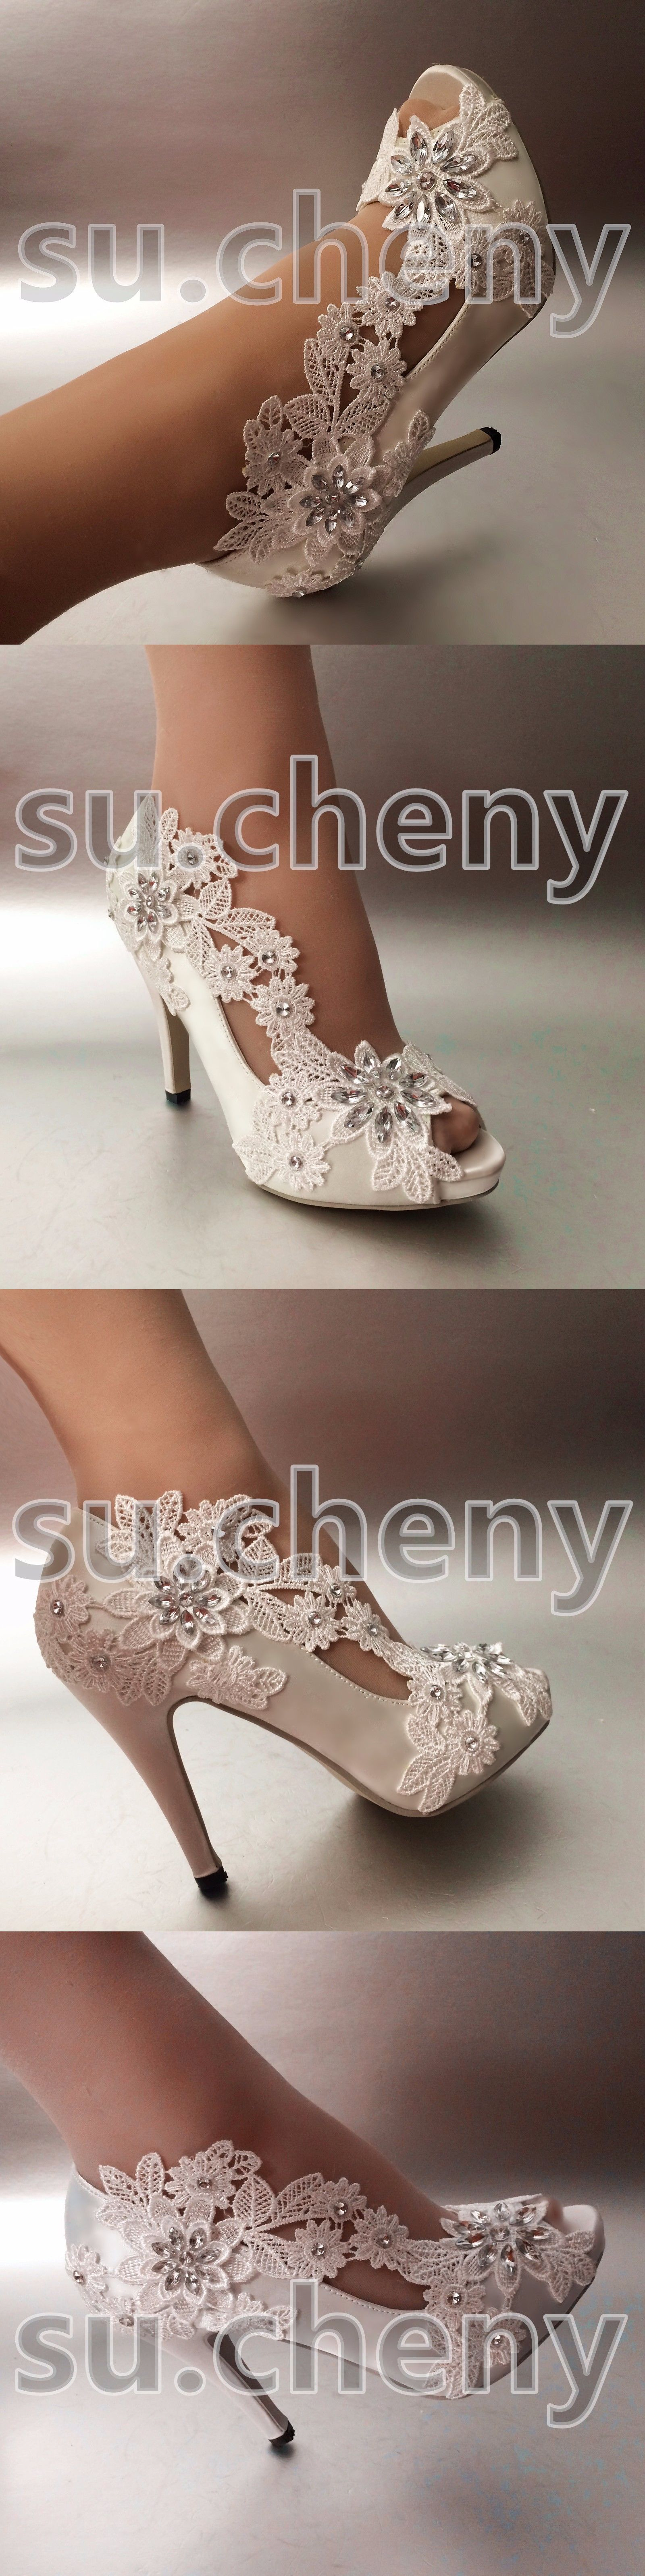 Wedding Shoes And Bridal Shoes: 34 Heel Satin White Ivory Lace Pearls Open Toe Wedding Shoes Bride Size 5-9.5 BUY IT NOW ONLY: $49.99